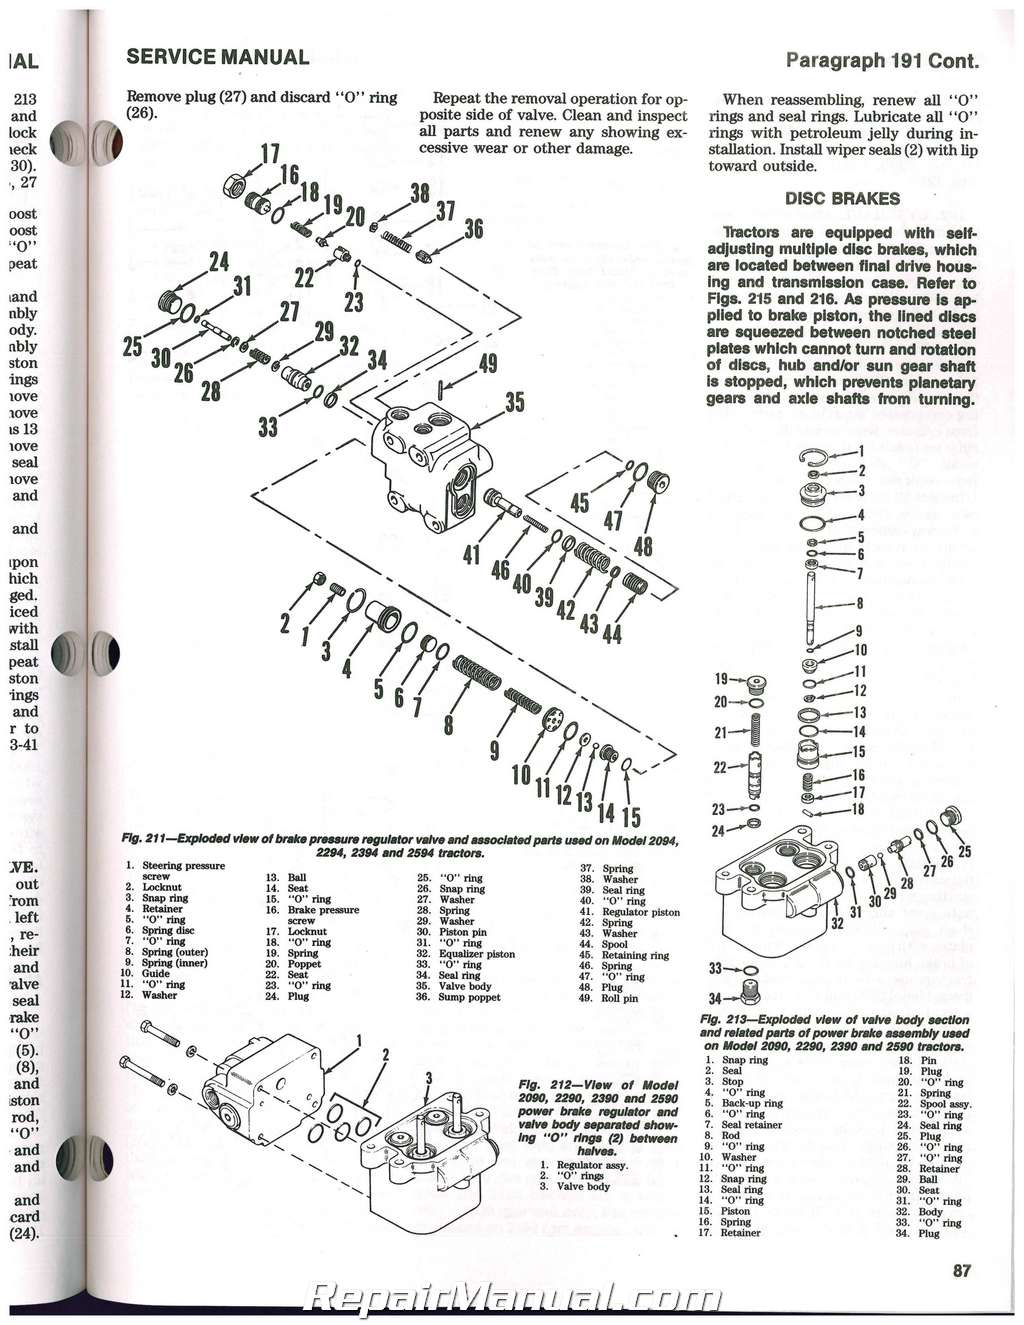 case ih 1660 combine wiring diagram free download \u2022 oasis dl co case ih wiring schematic 2004 jx95 case ih schematic download wiring diagrams \\u2022 wiring diagram for 1660 combine at case ih